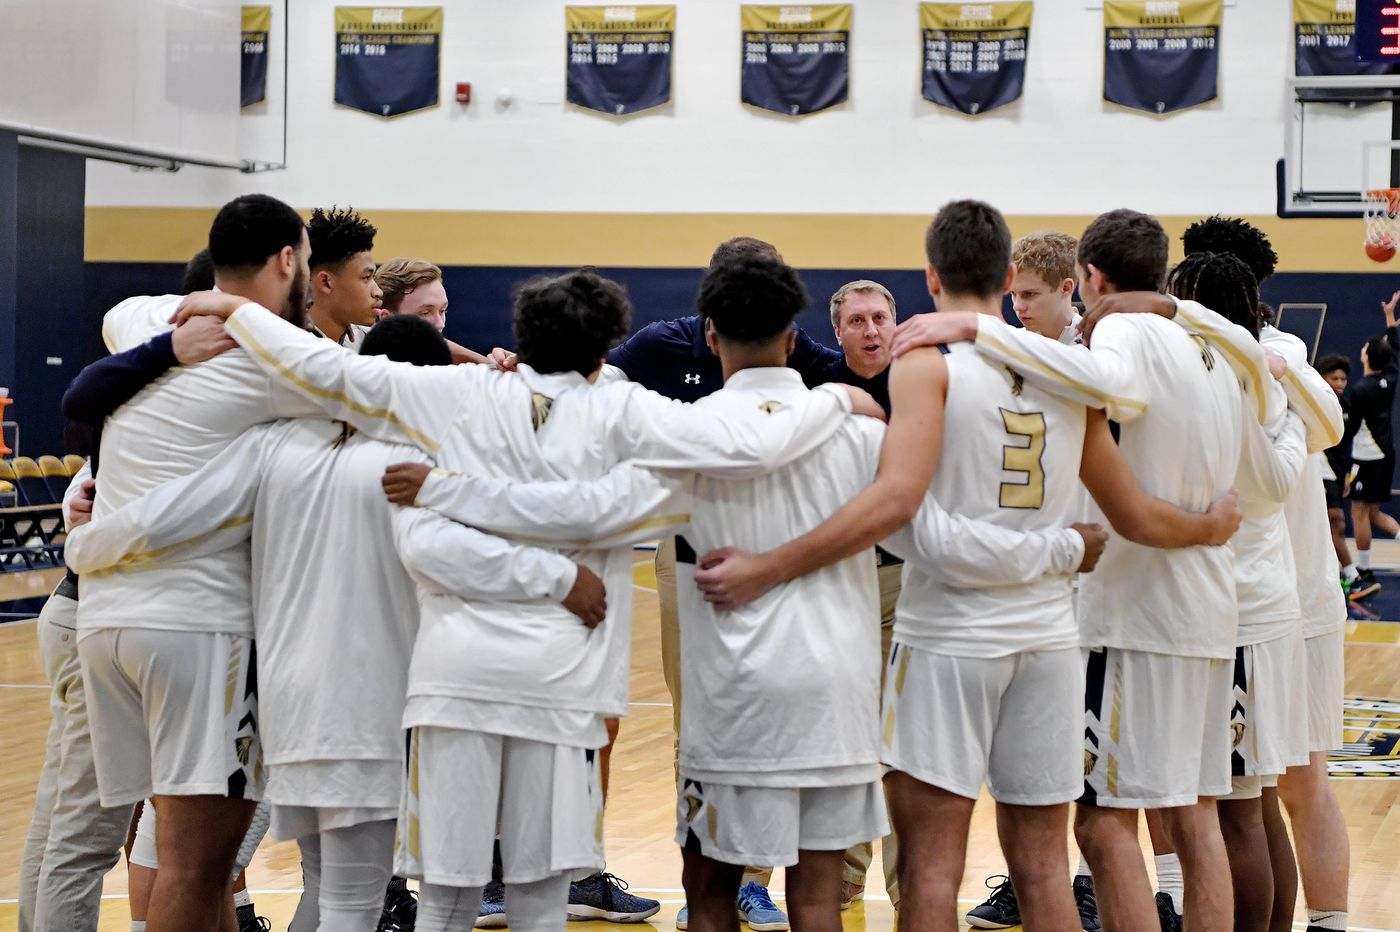 Thursday's South Jersey roundup: Lorenzo Repack scores 33 in Northern Burlington win